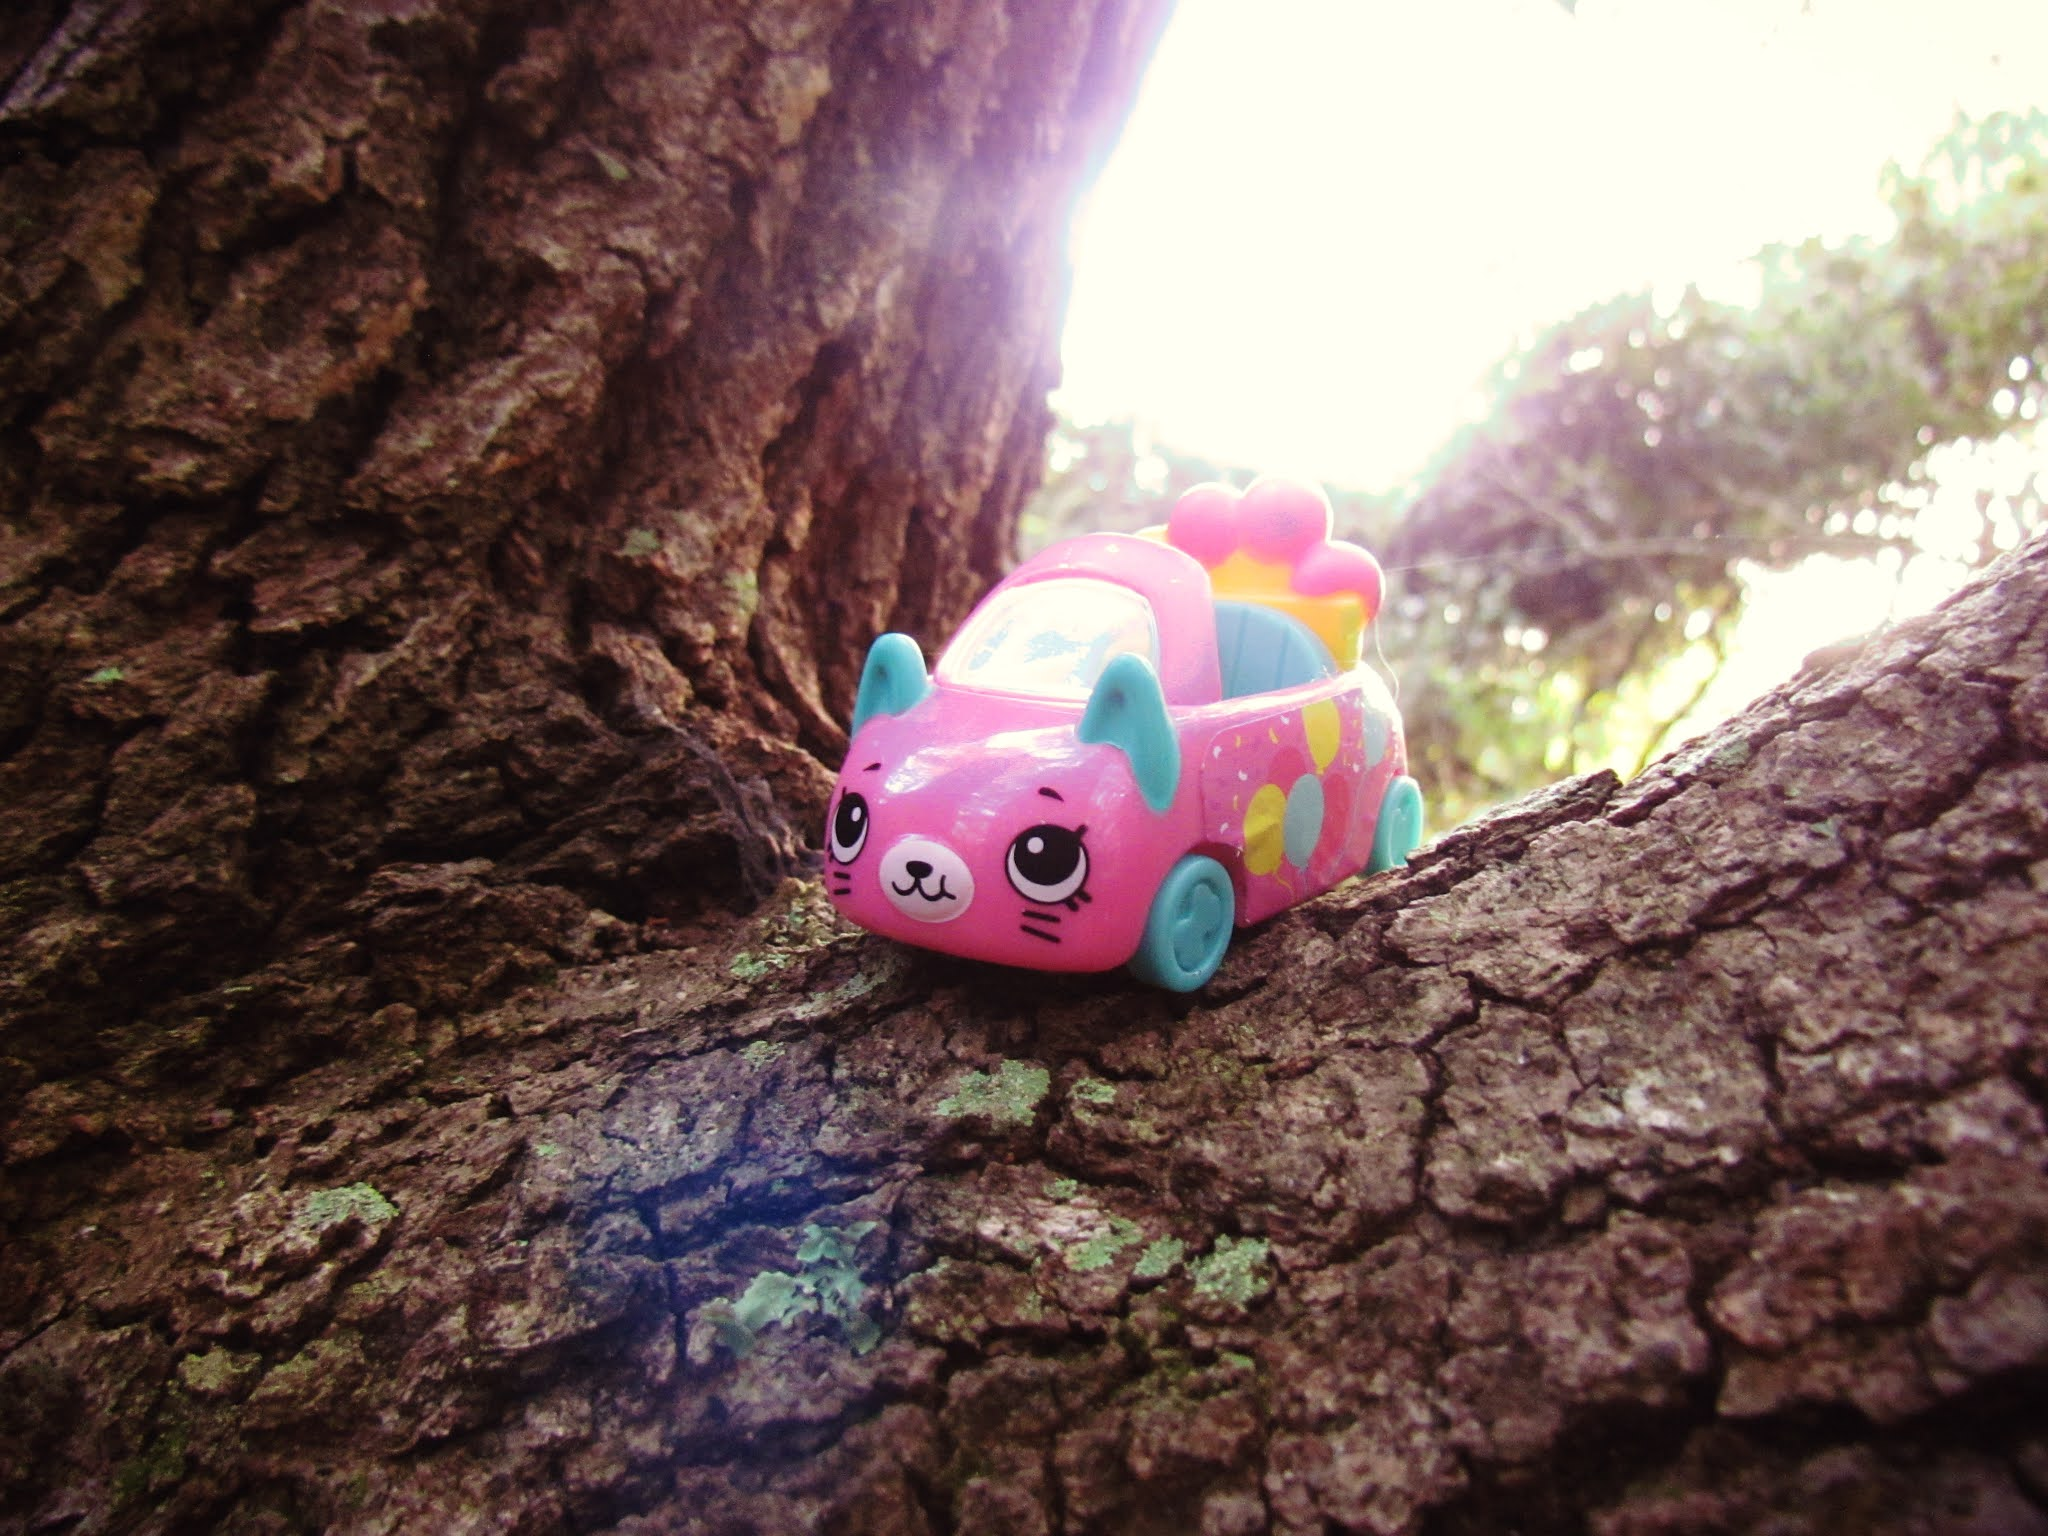 A tiny pink toy car, girls novelty toy, with mouse face in an oak tree in the park in Florida